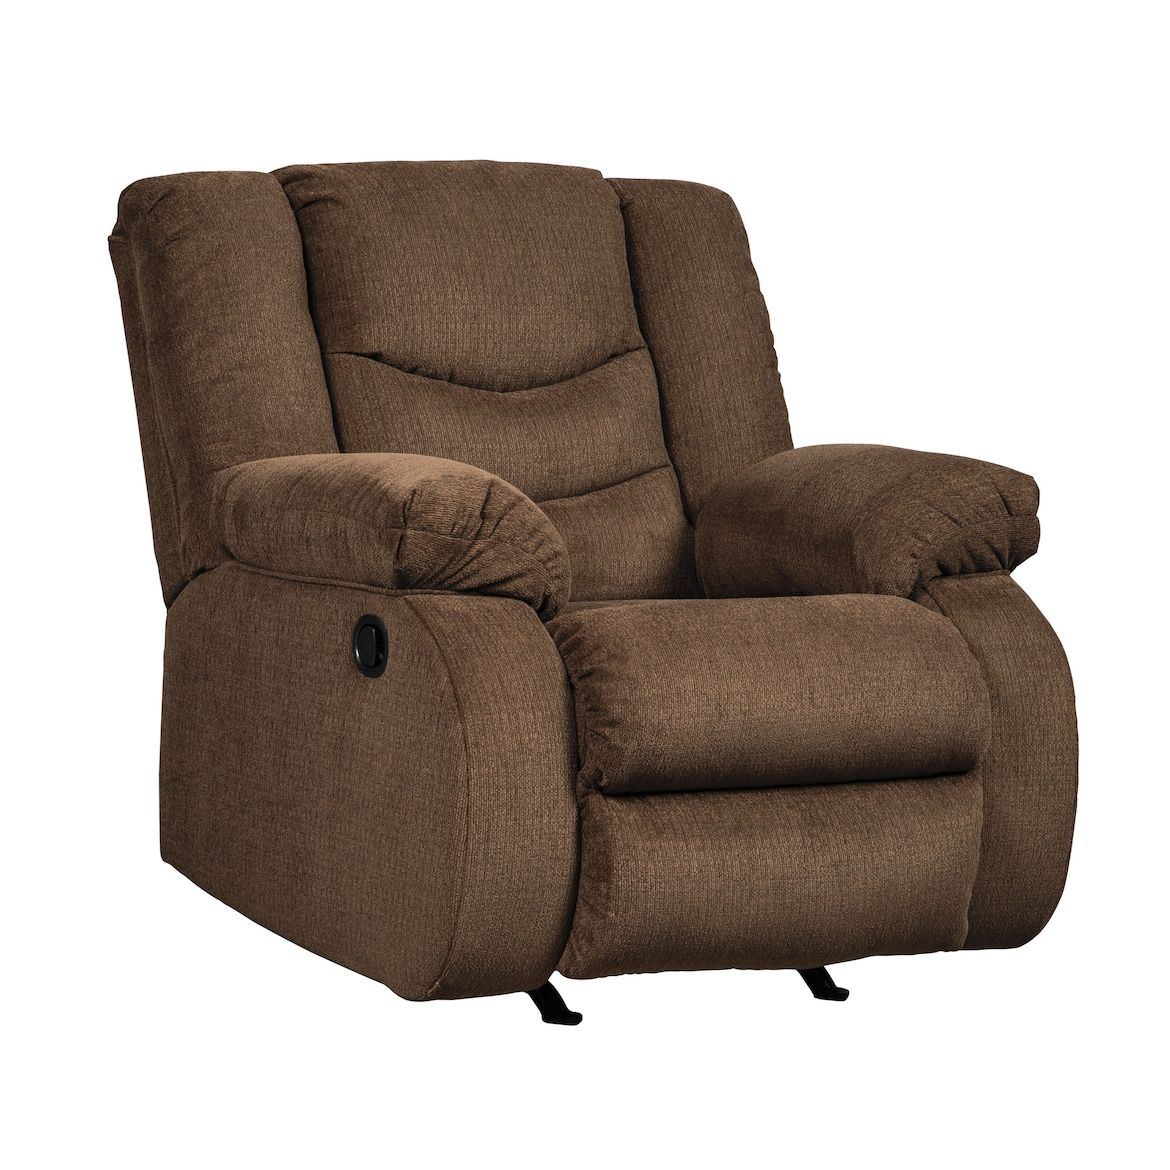 American Freight Furniture Brooklyn Park Mn: Coppola Recliner - Chocolate